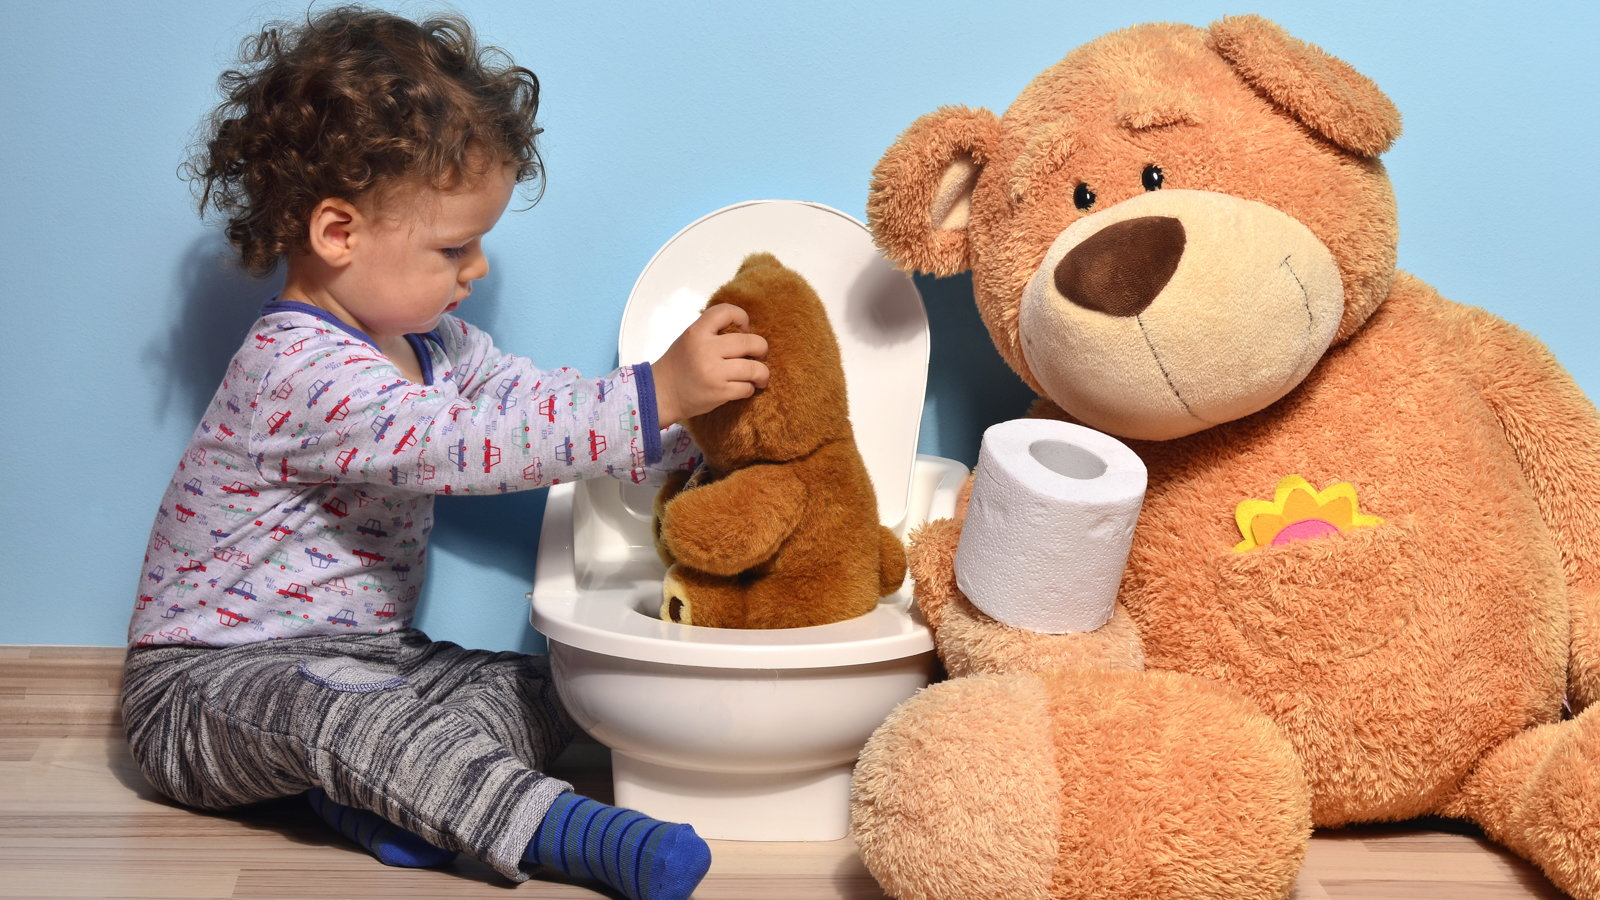 boy teaching teddy bear how to use the potty